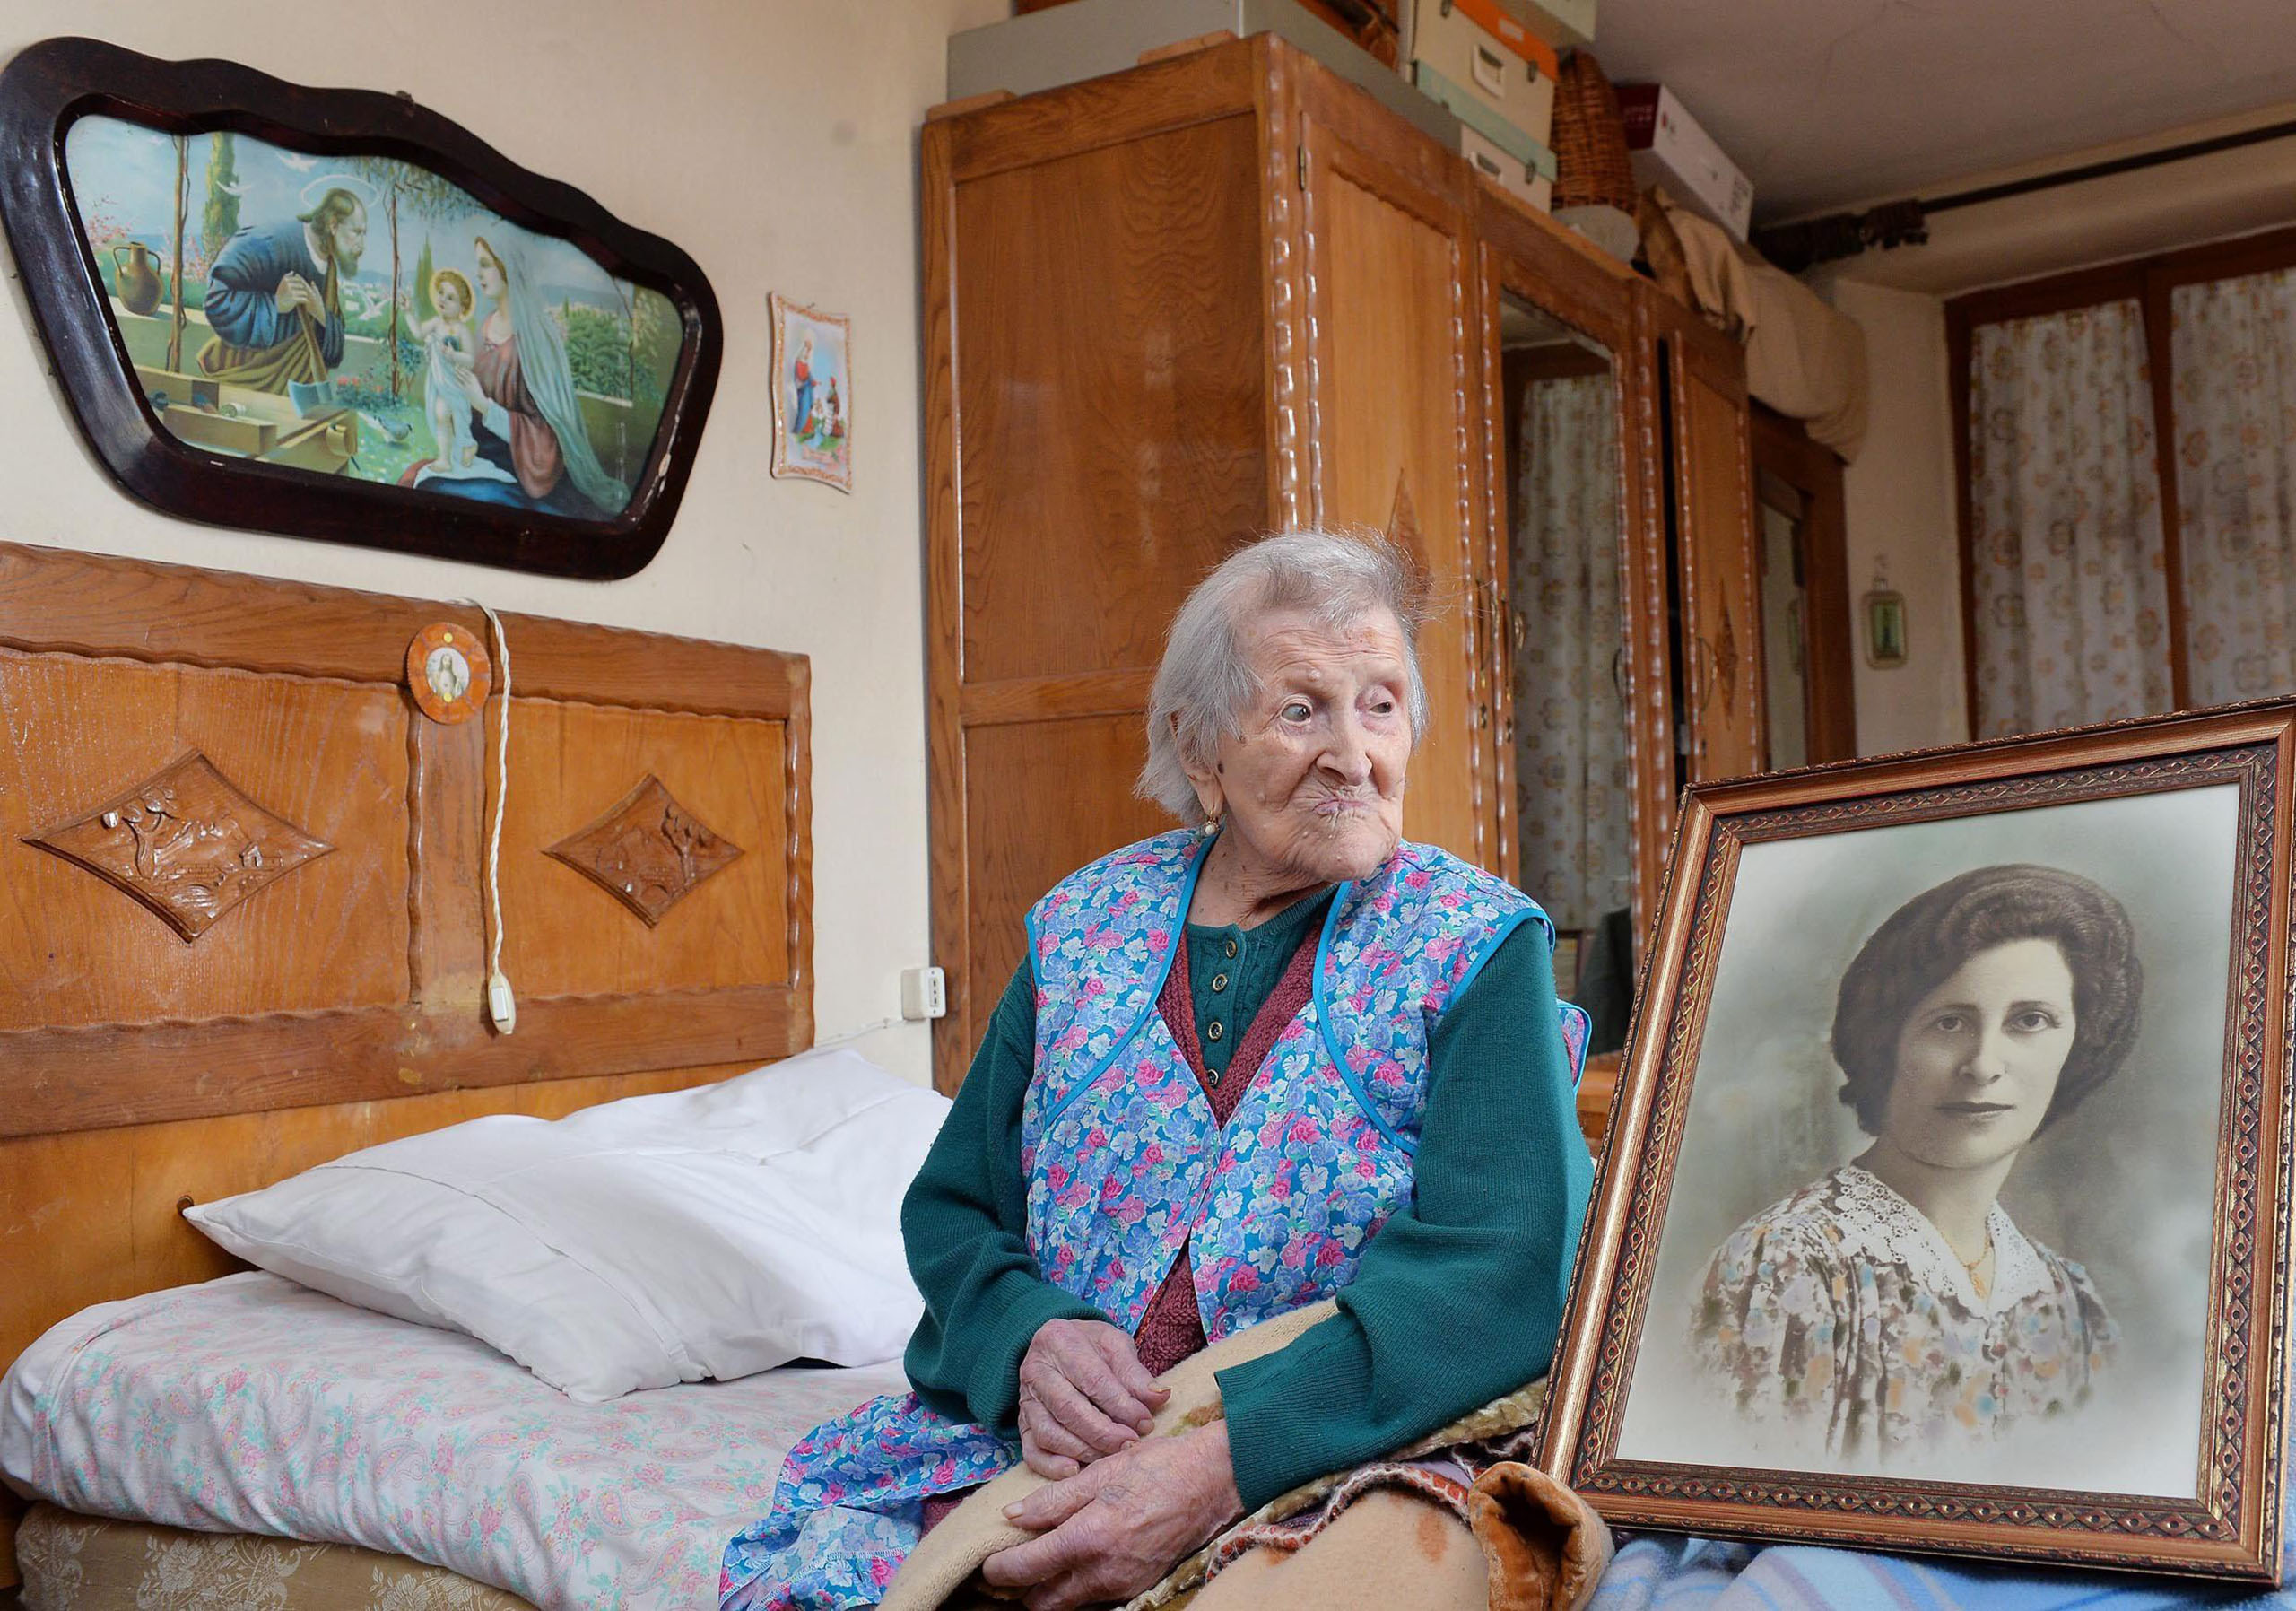 Emma Morano, 116, sits in her apartment nex to a picture depicting her where she was young in Verbania, northern Italy, May 13 2016.